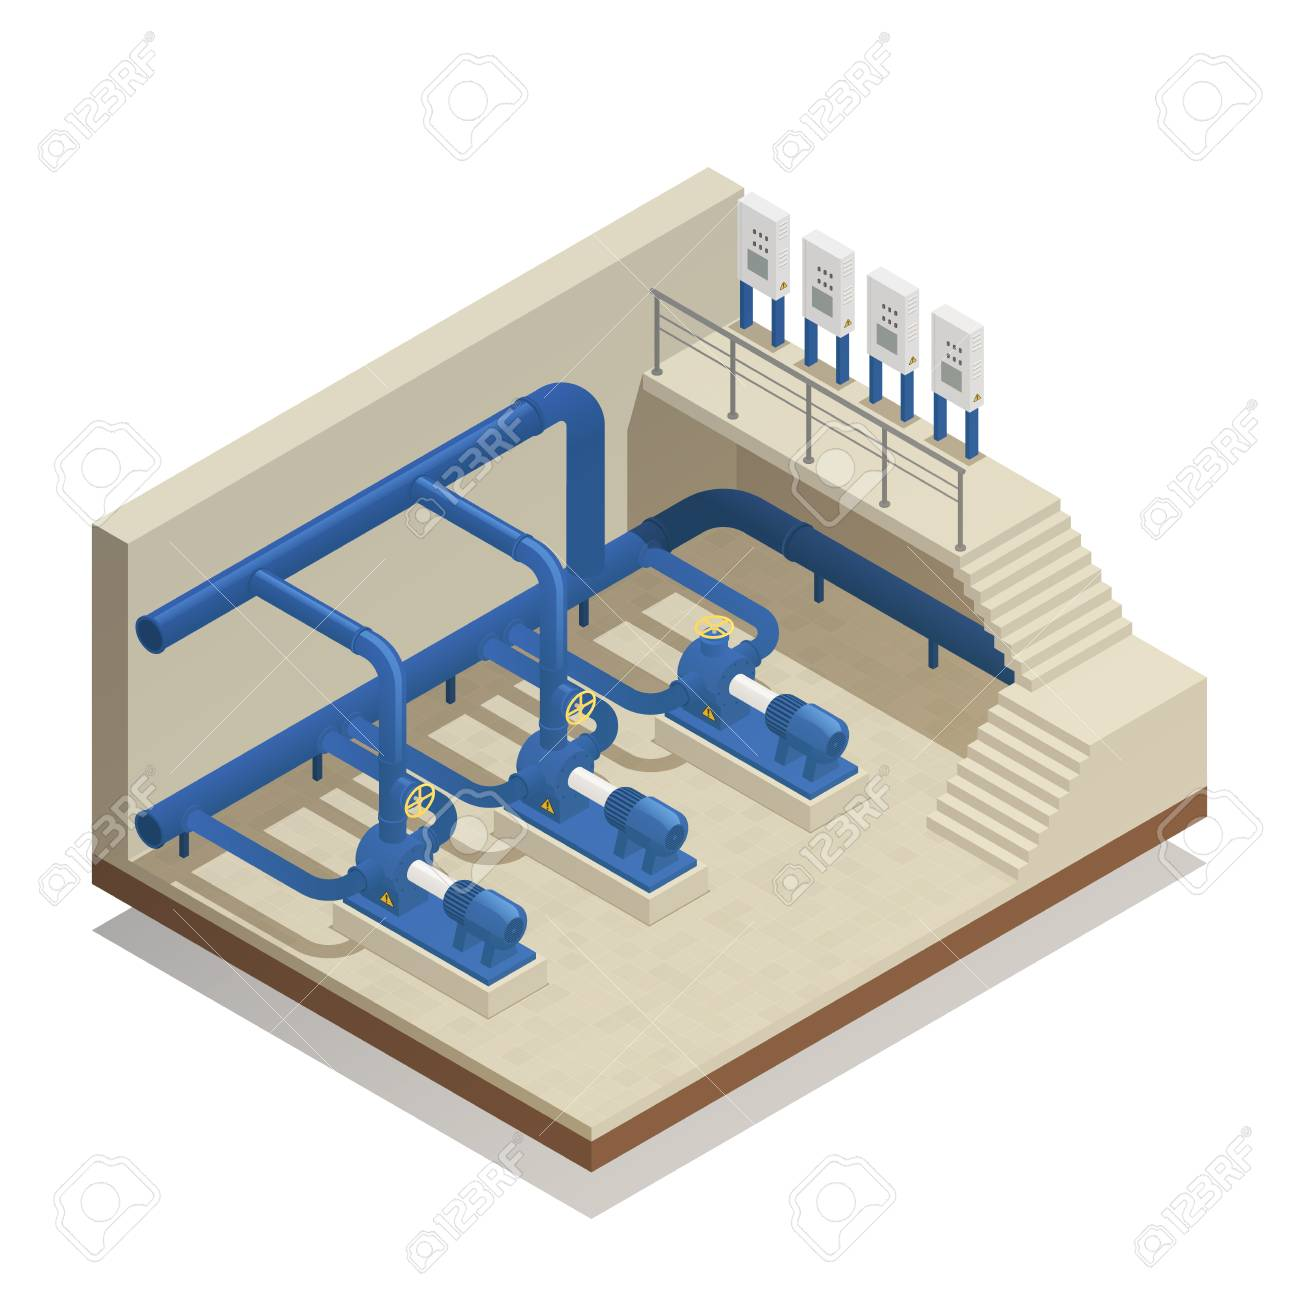 Water purification and cleaning facility element isometric composition with treatment plant pump system equipment vector illustration. - 97524736